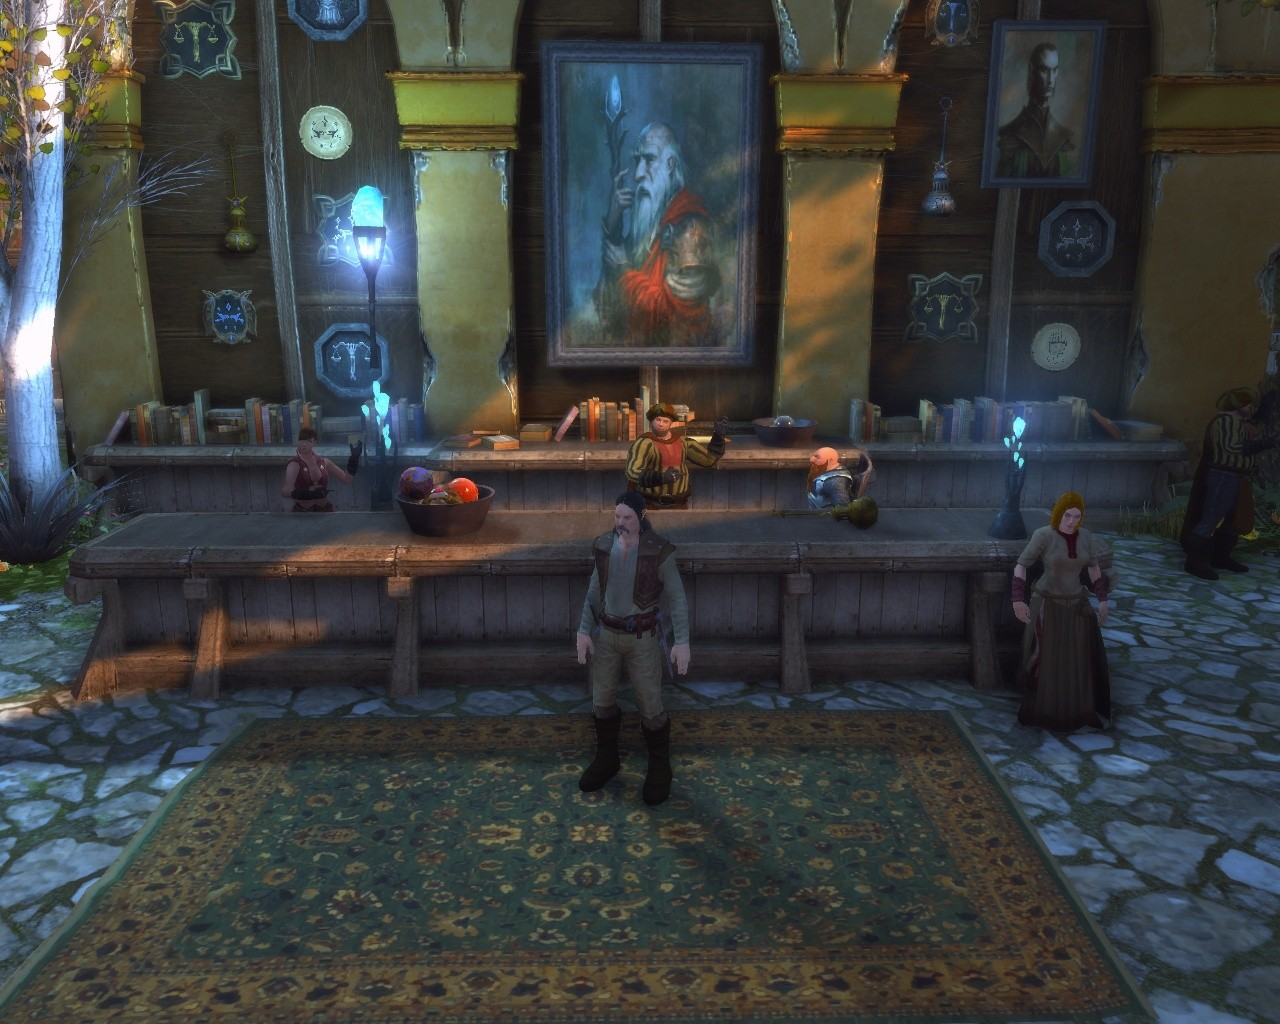 Neverwinter - Some..Vampire like dude on the right...